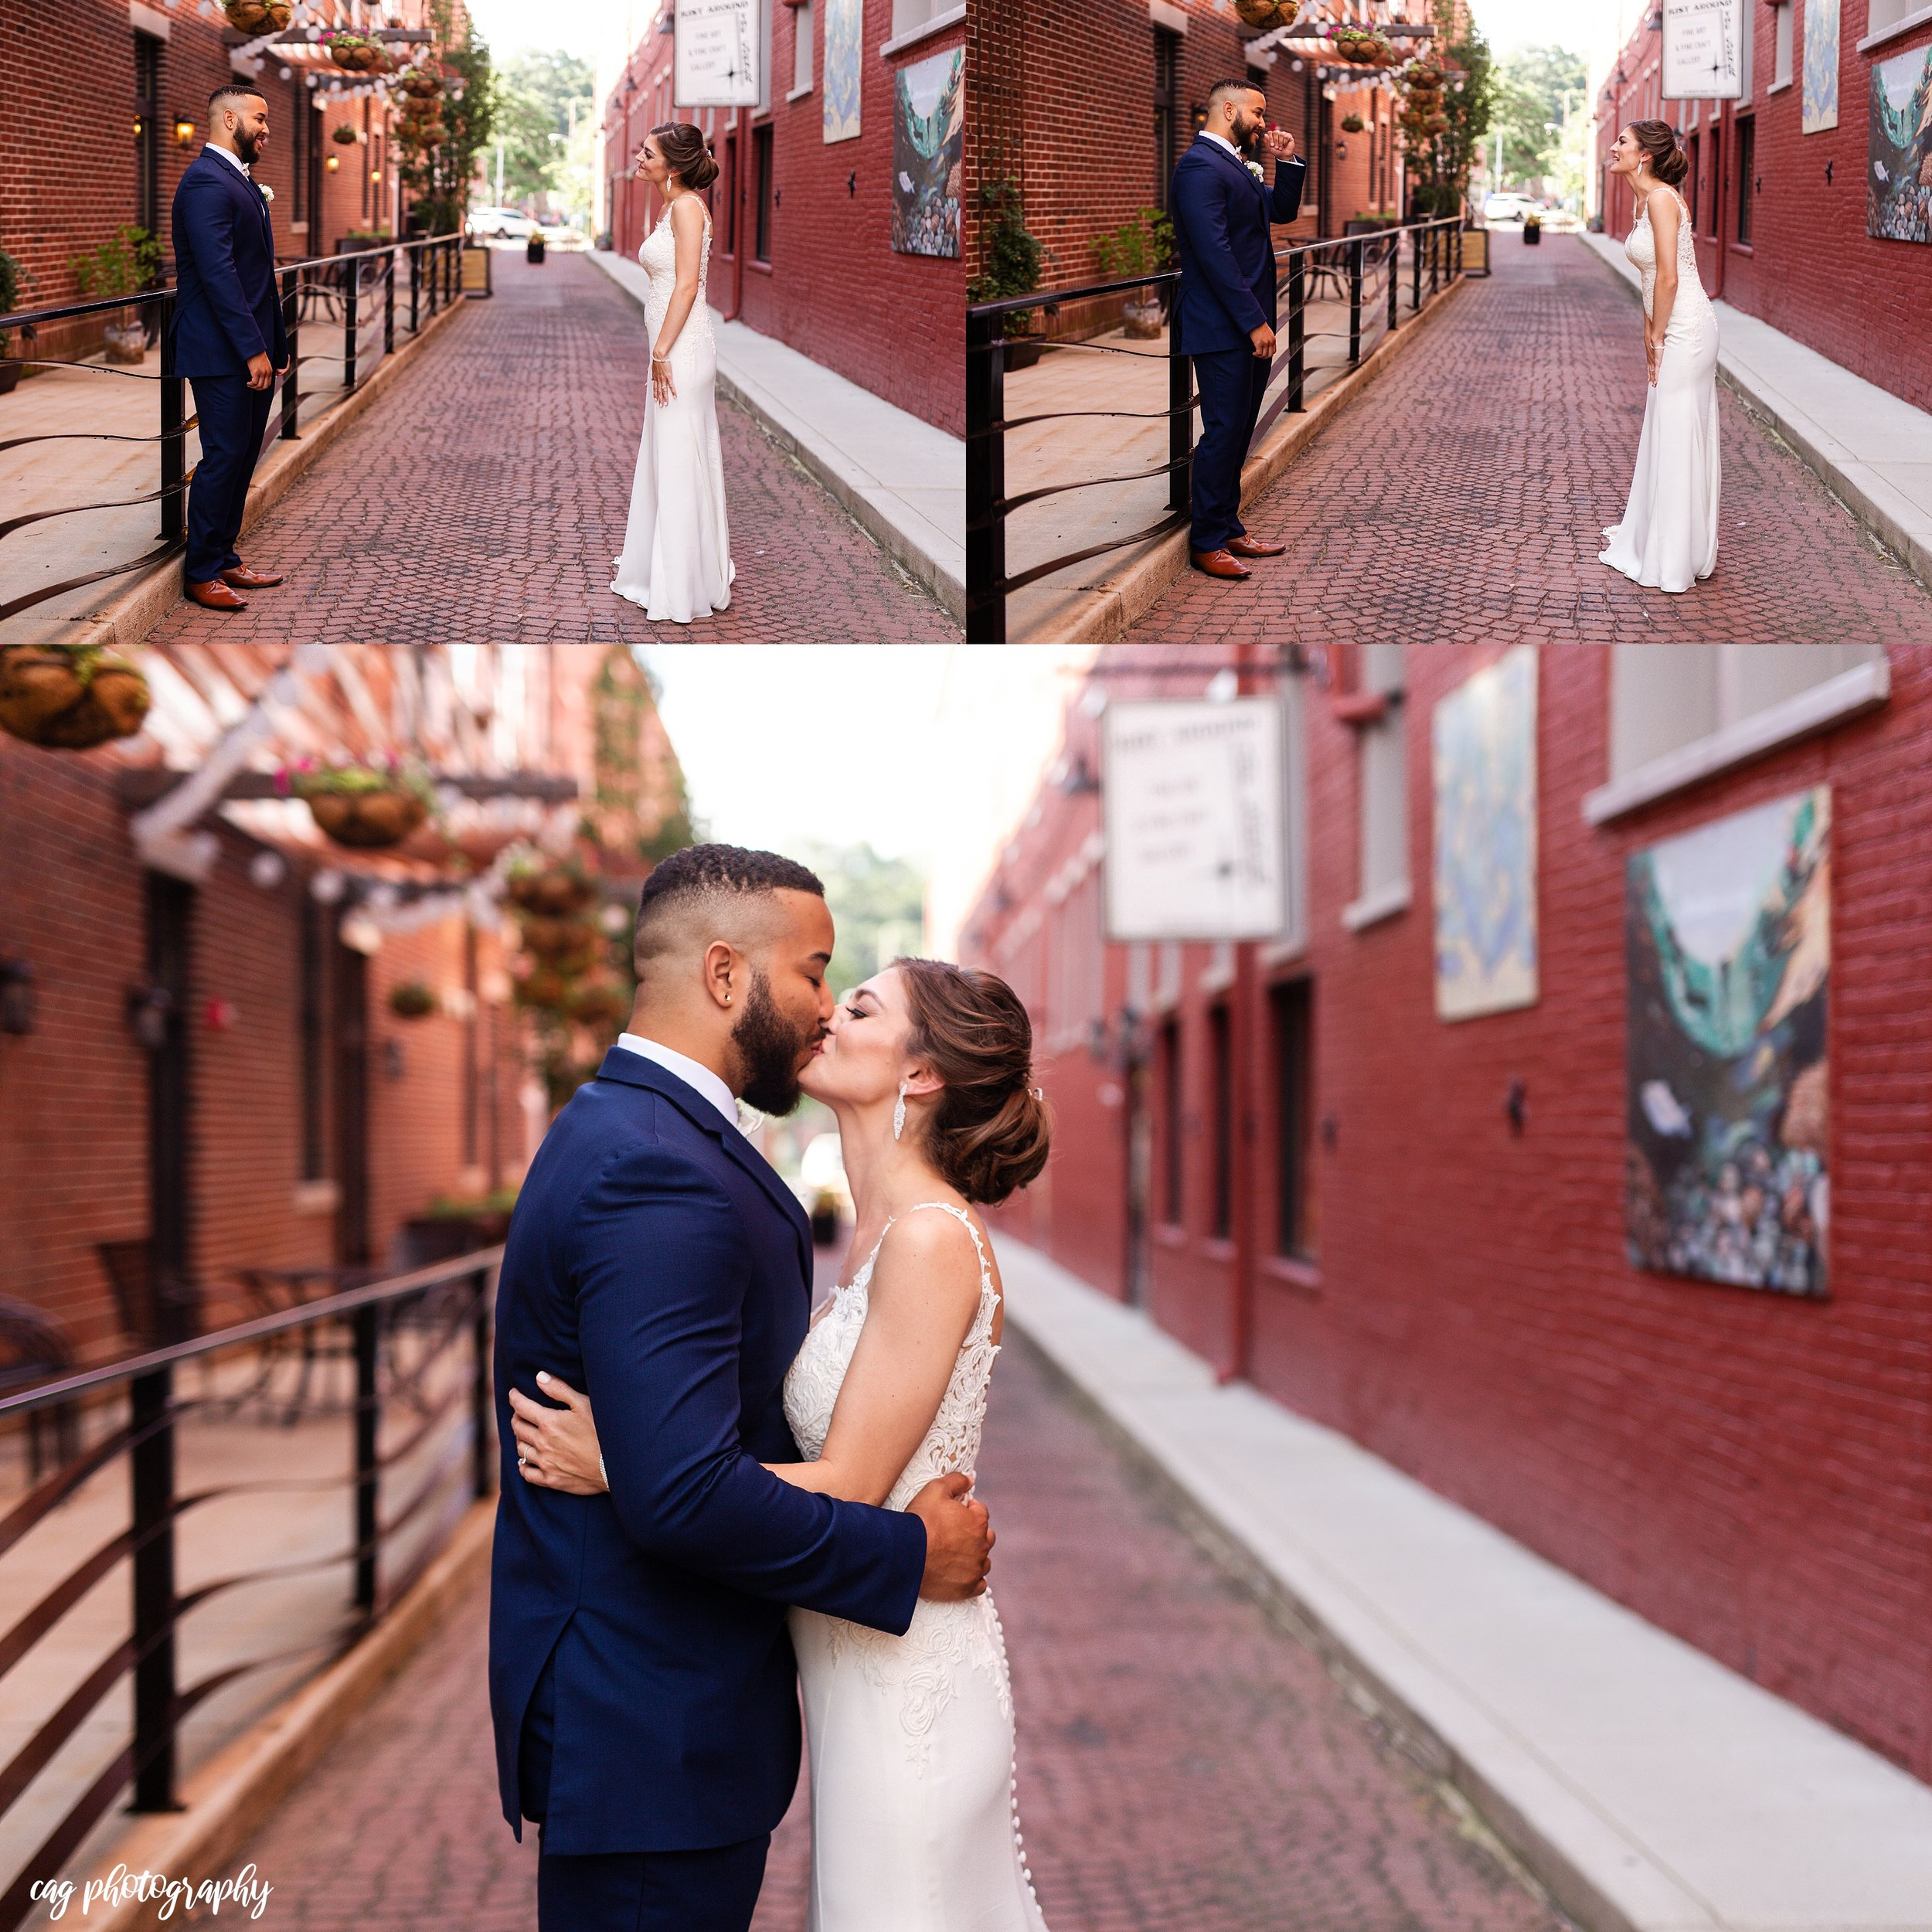 Sarah+Talon MARRED-188.jpg